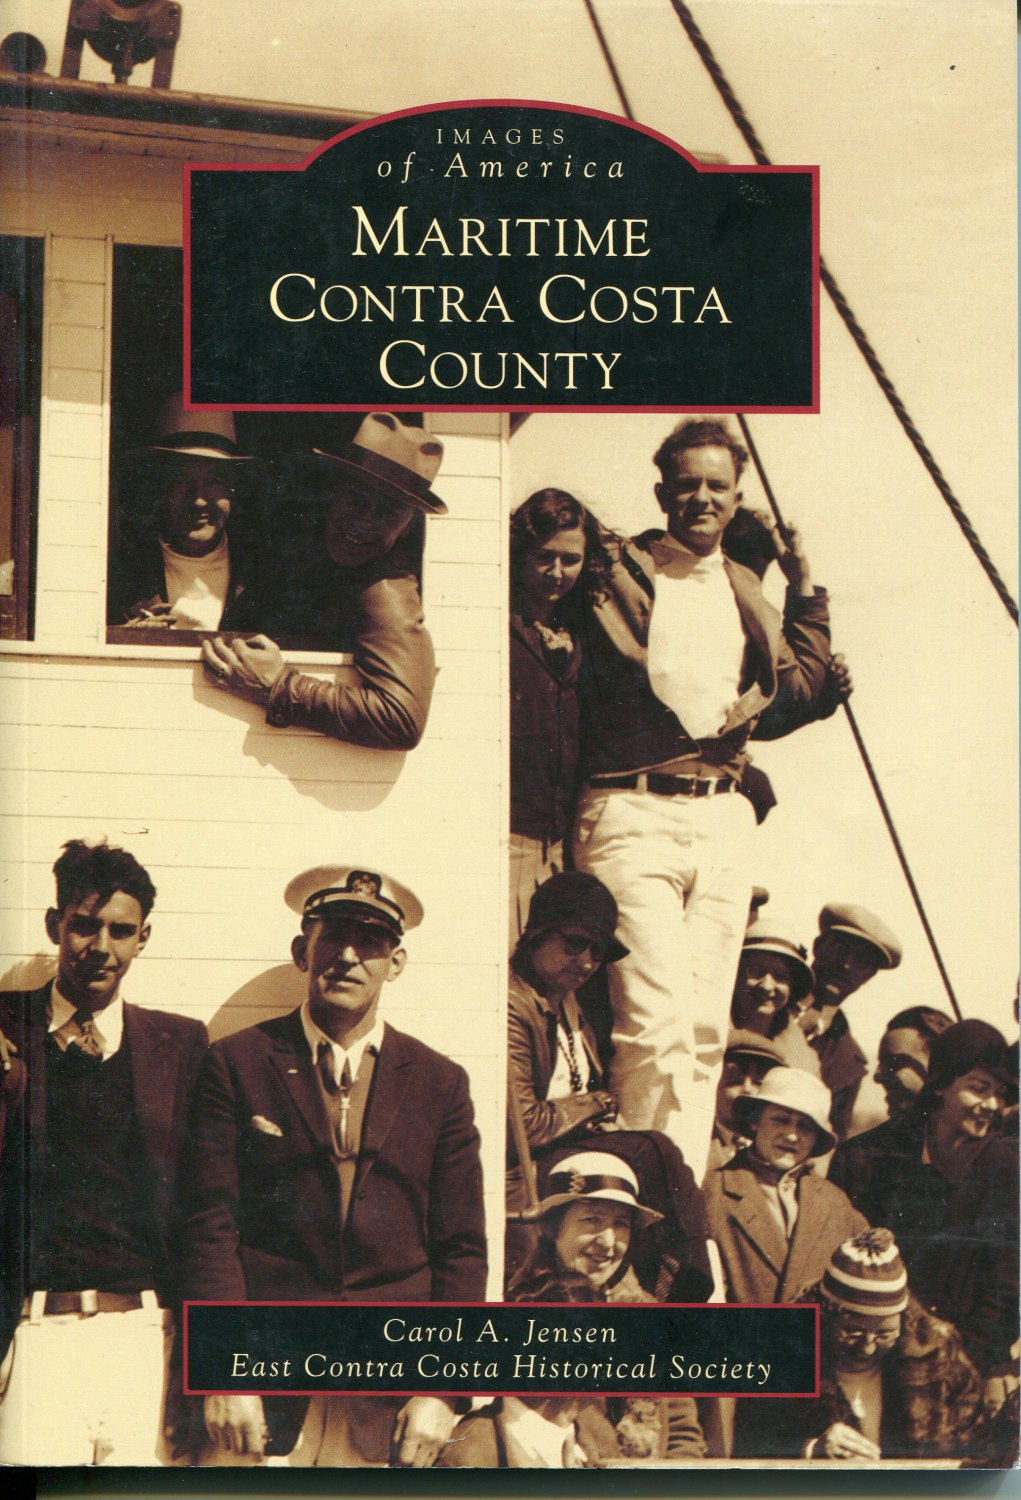 Images of America - Maritime Contra Costa County